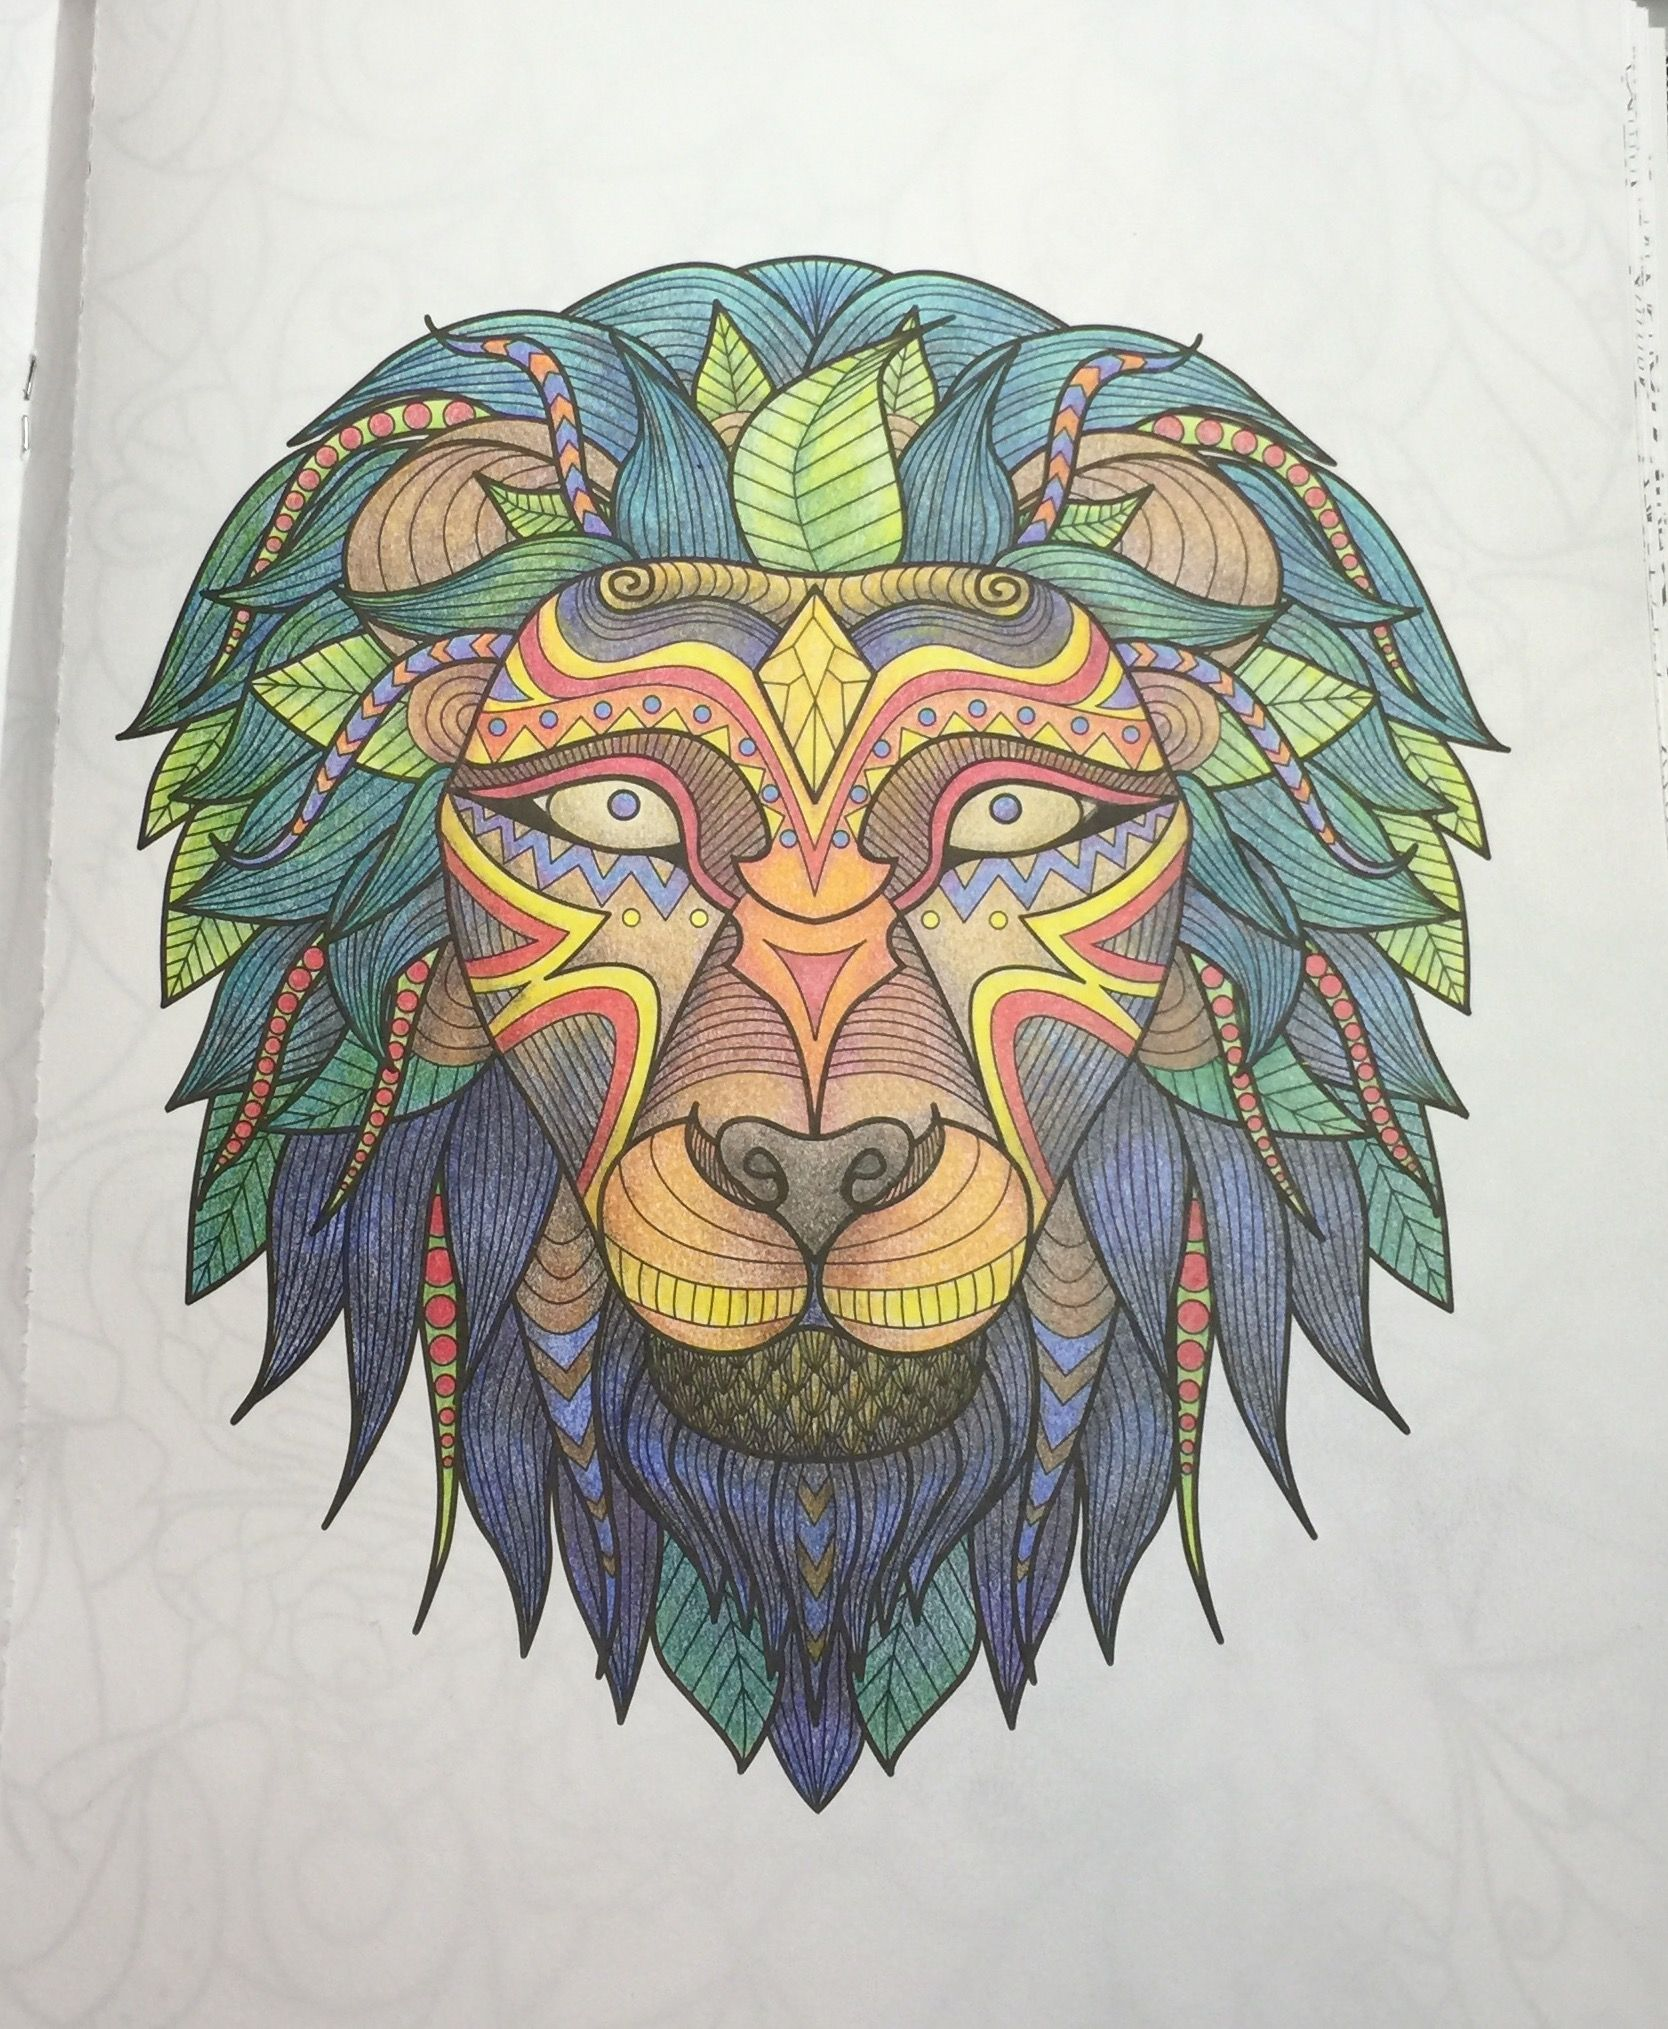 Art of Coloring Animals Lions Adult coloring and Coloring books